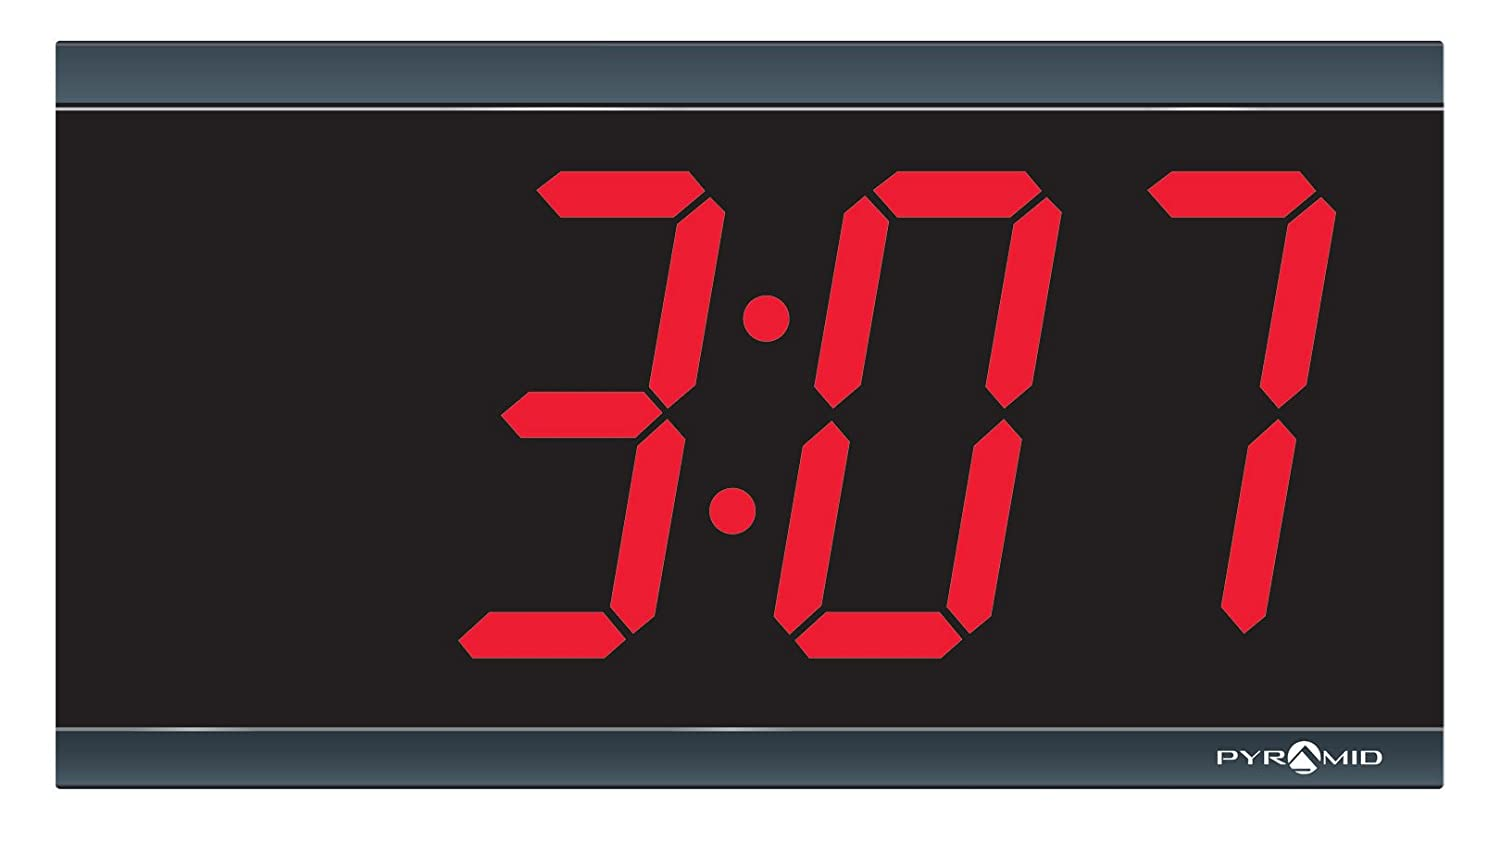 Amazon pyramid extra large 4 numeral red led digital clock amazon pyramid extra large 4 numeral red led digital clock 4 digit 110v 6 cord made in usa dig 4b time clocks electronics amipublicfo Image collections